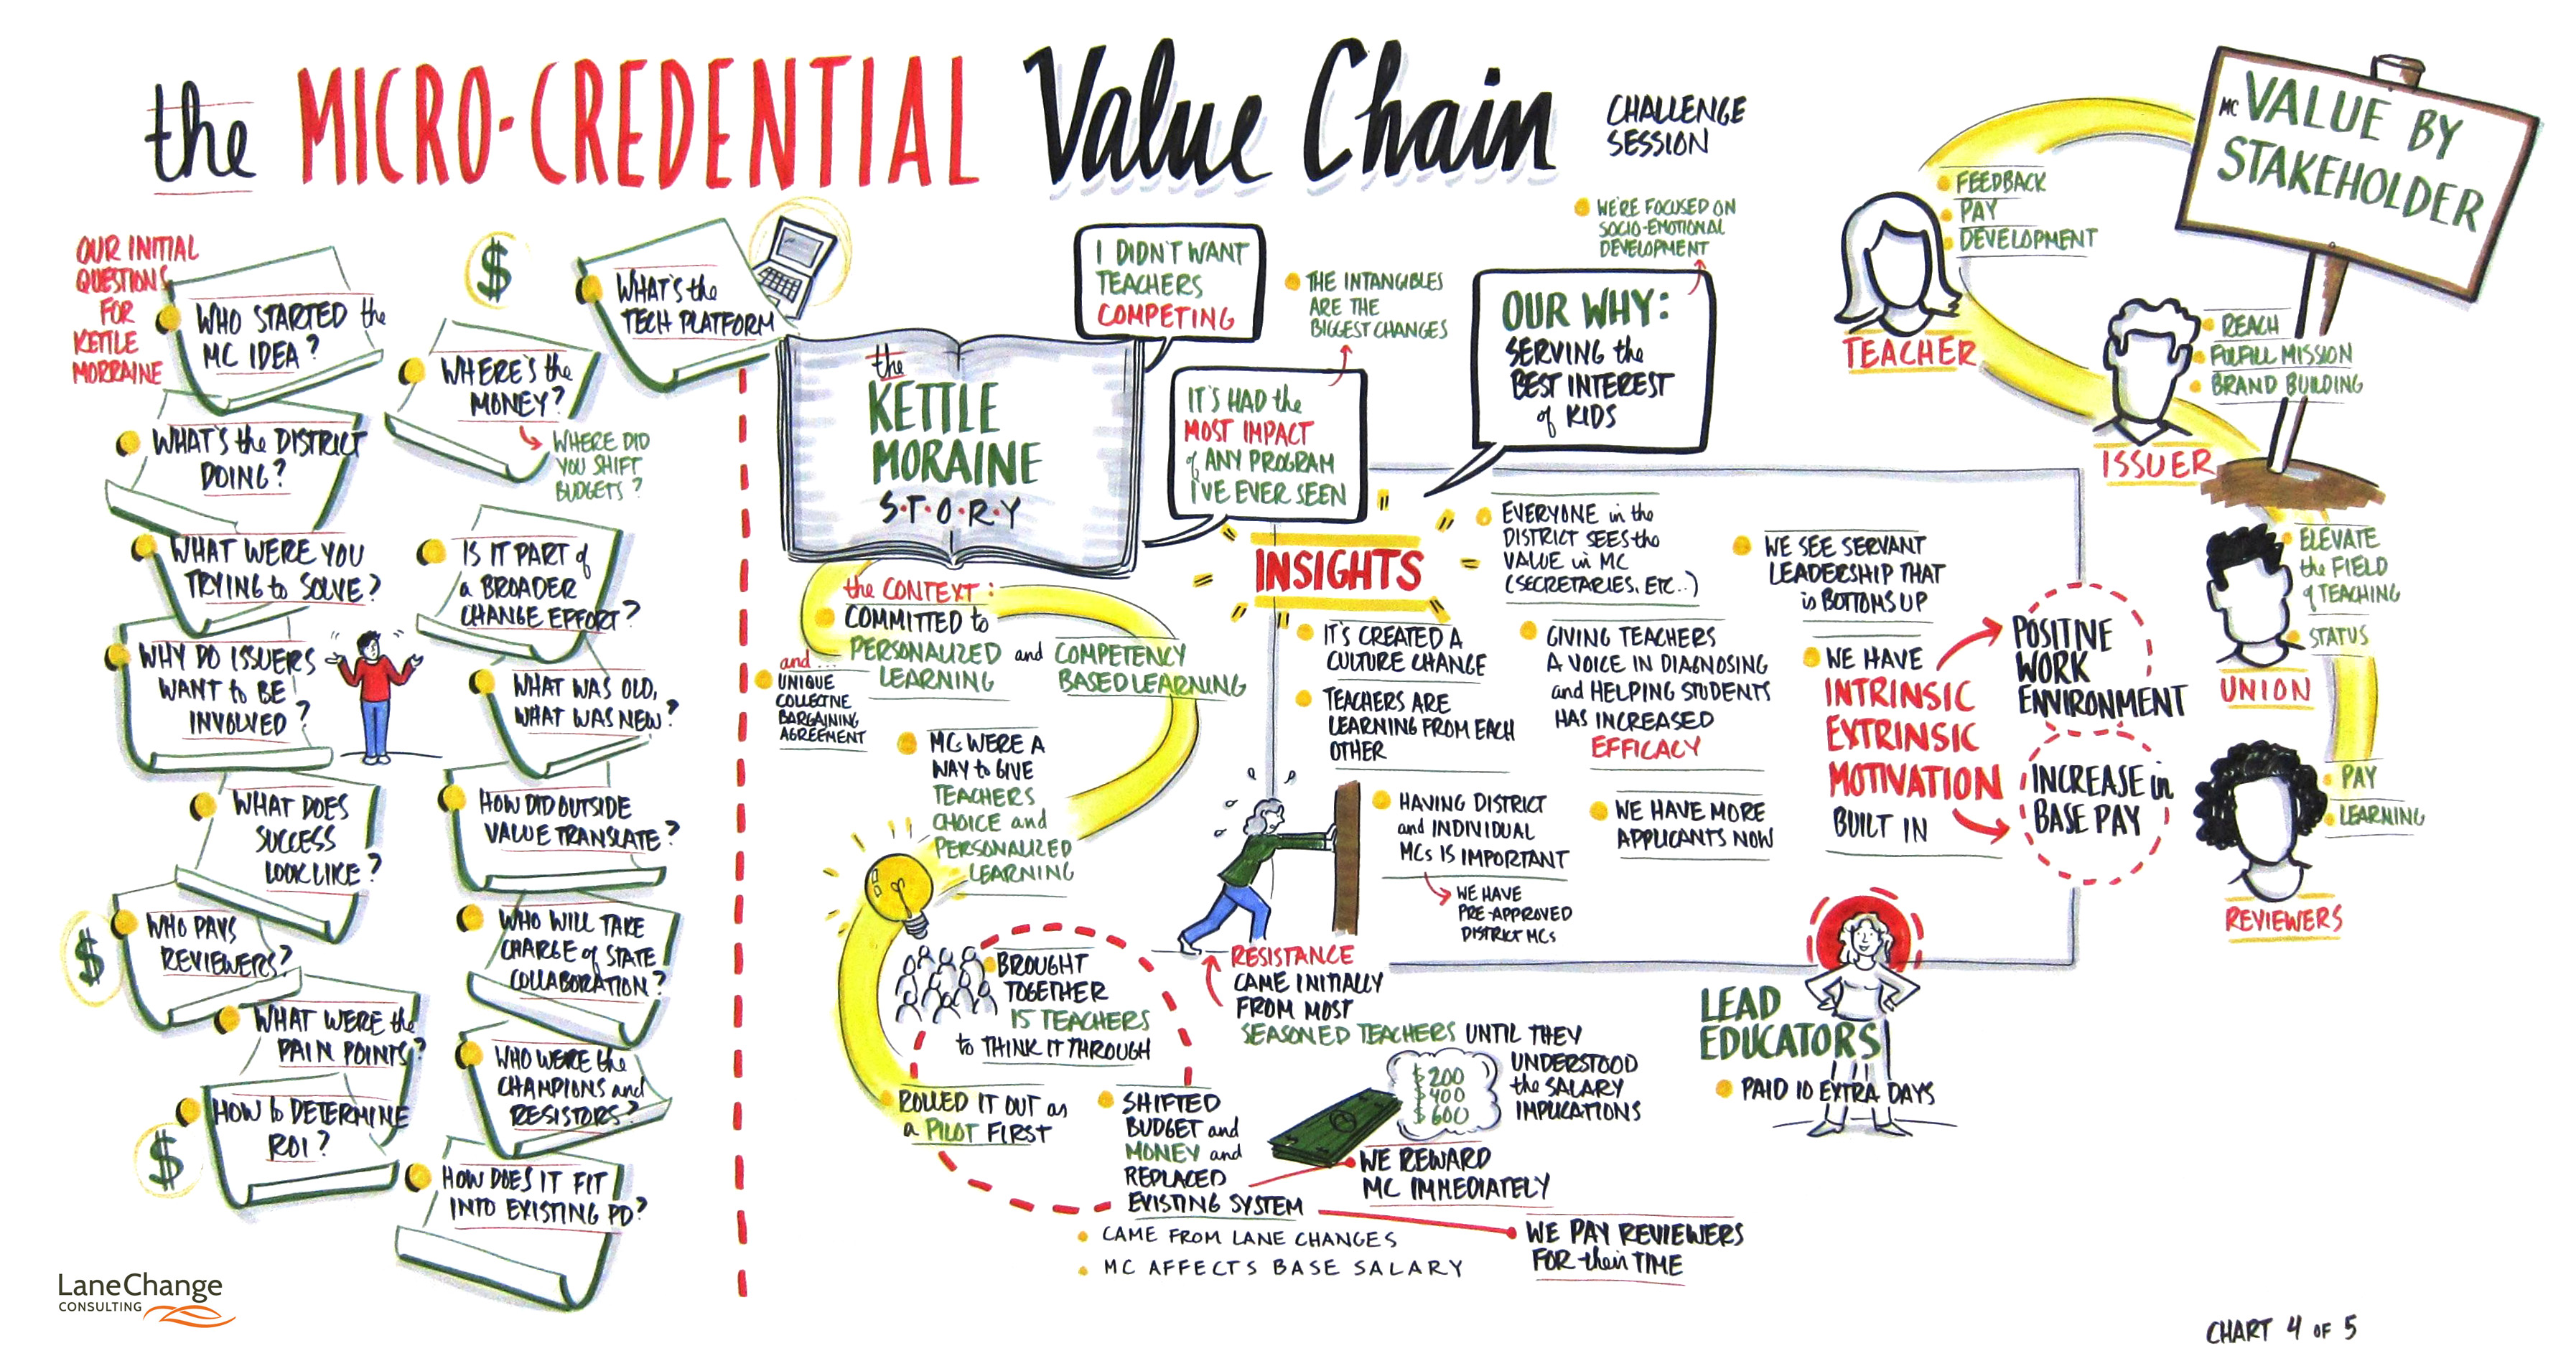 Microcredentials value chain illustration